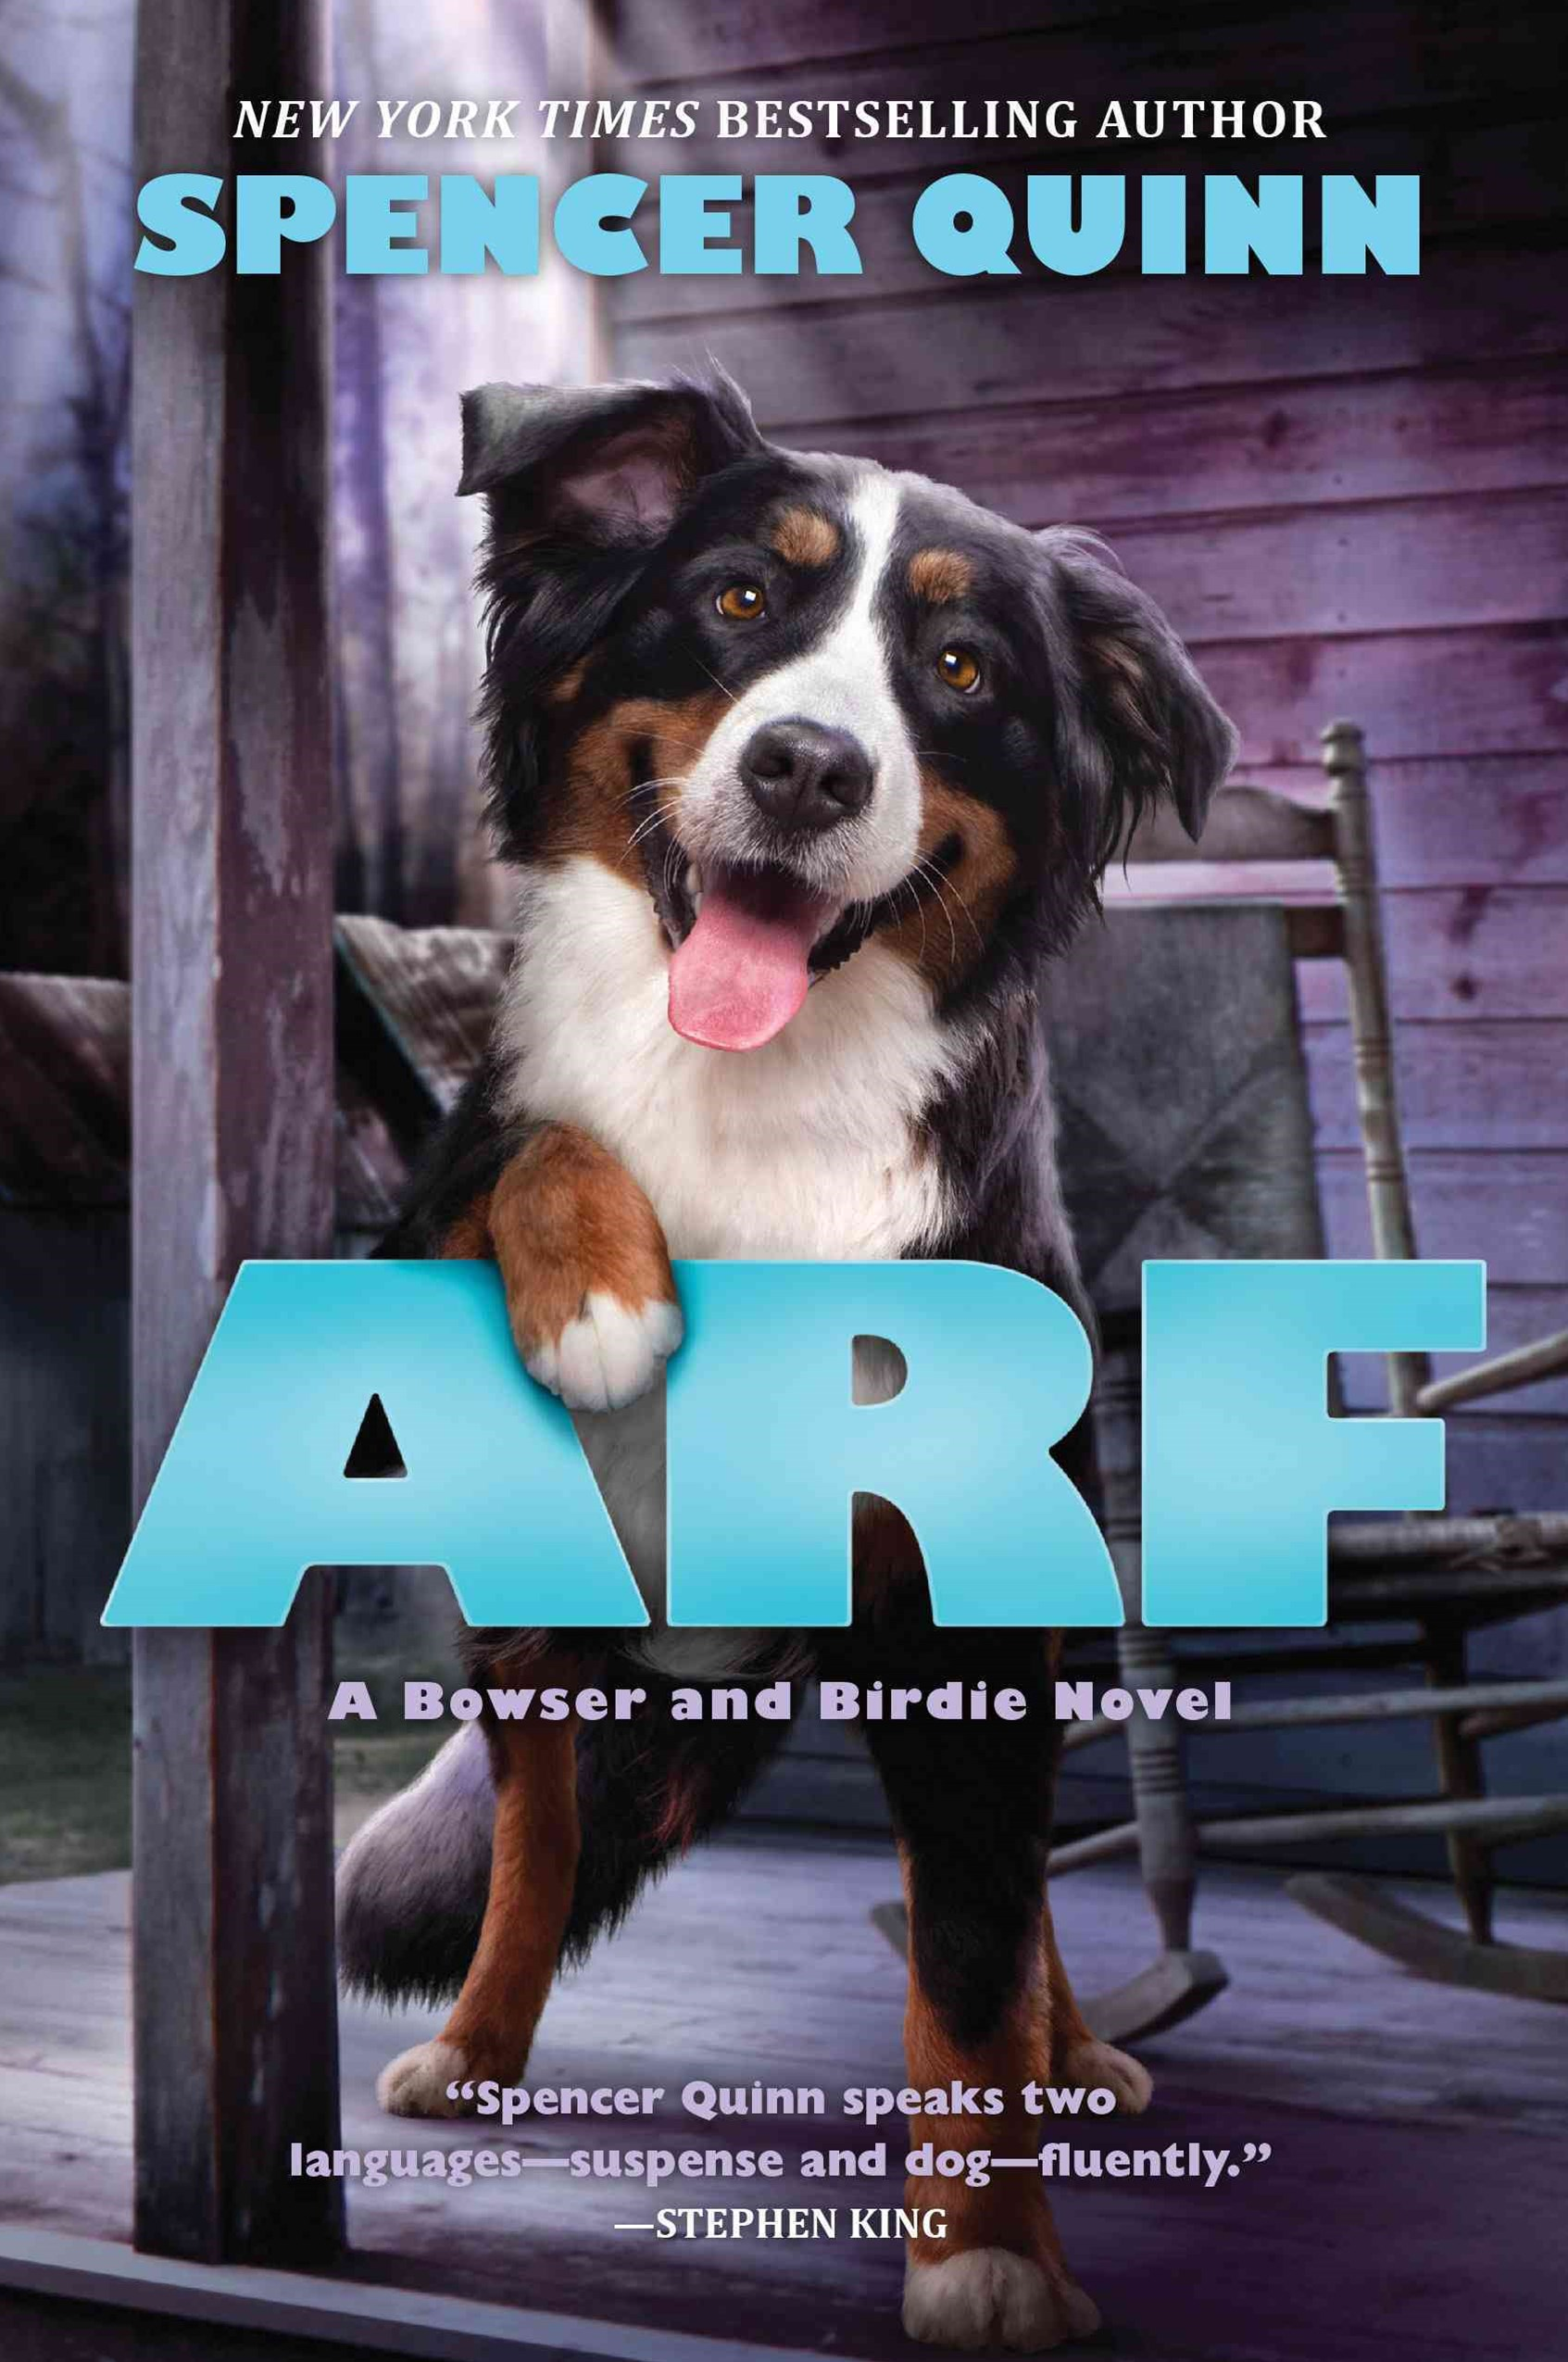 ARF - A Bowser and Birdie Novel